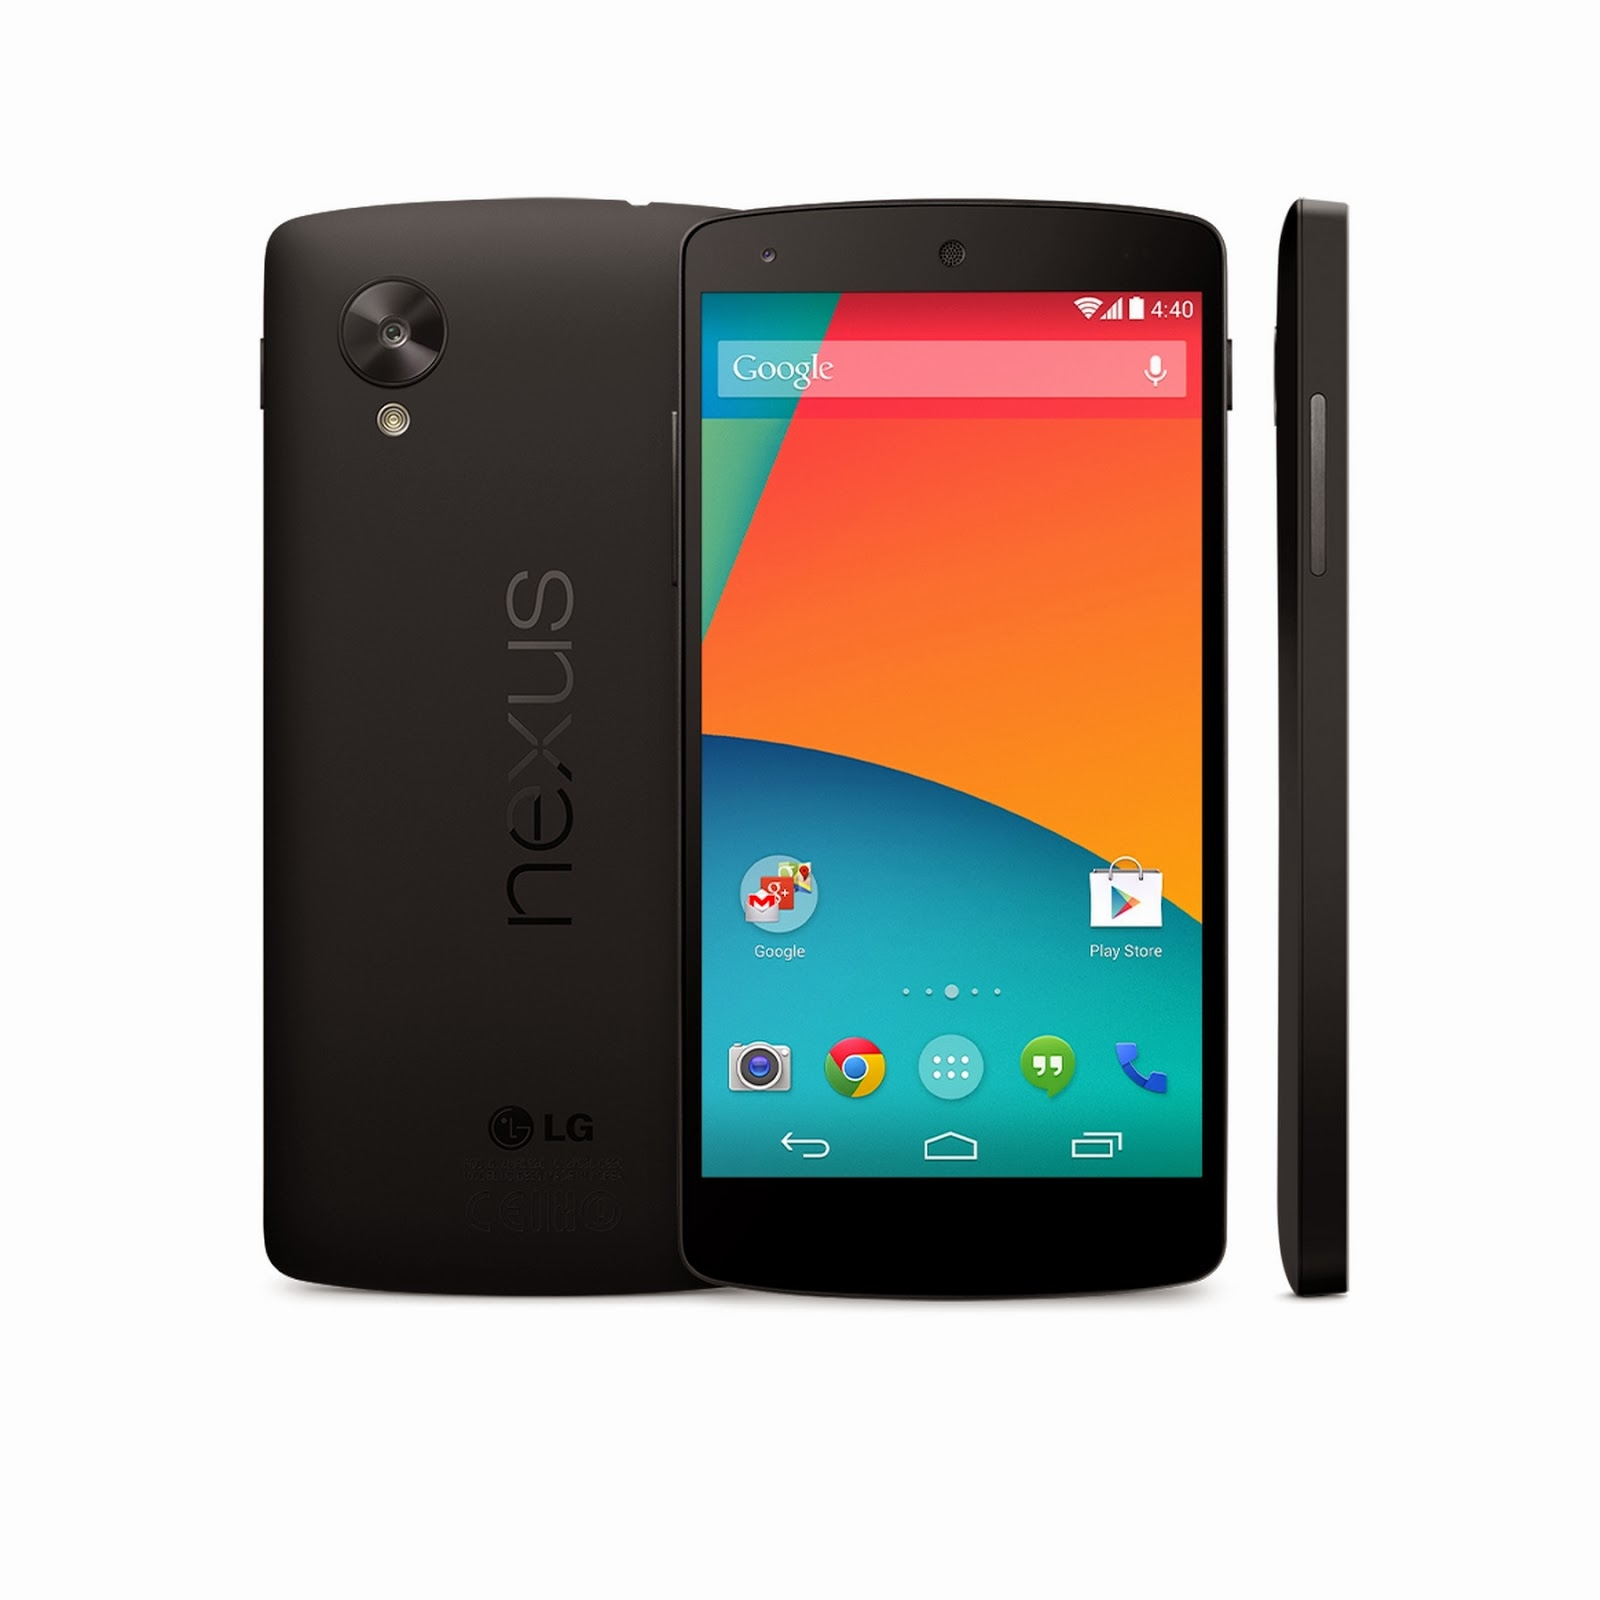 Nexus 5, Nexus 7 2013 Now Officially Available in India.